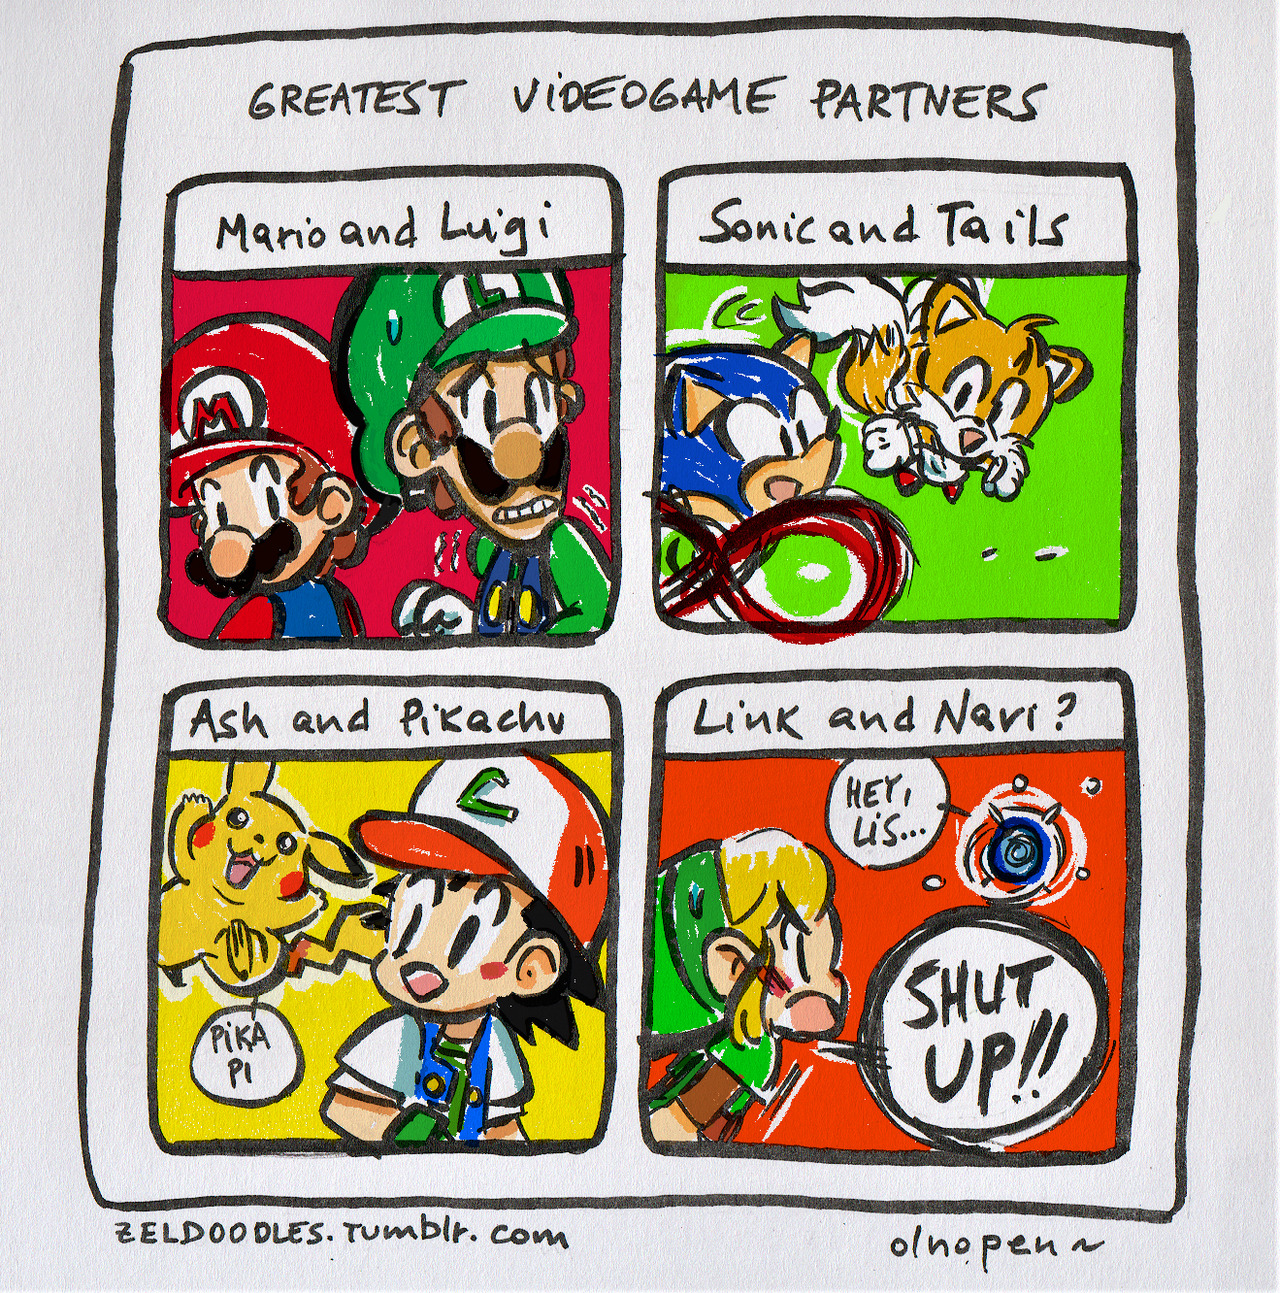 Greatest Video Game Partners